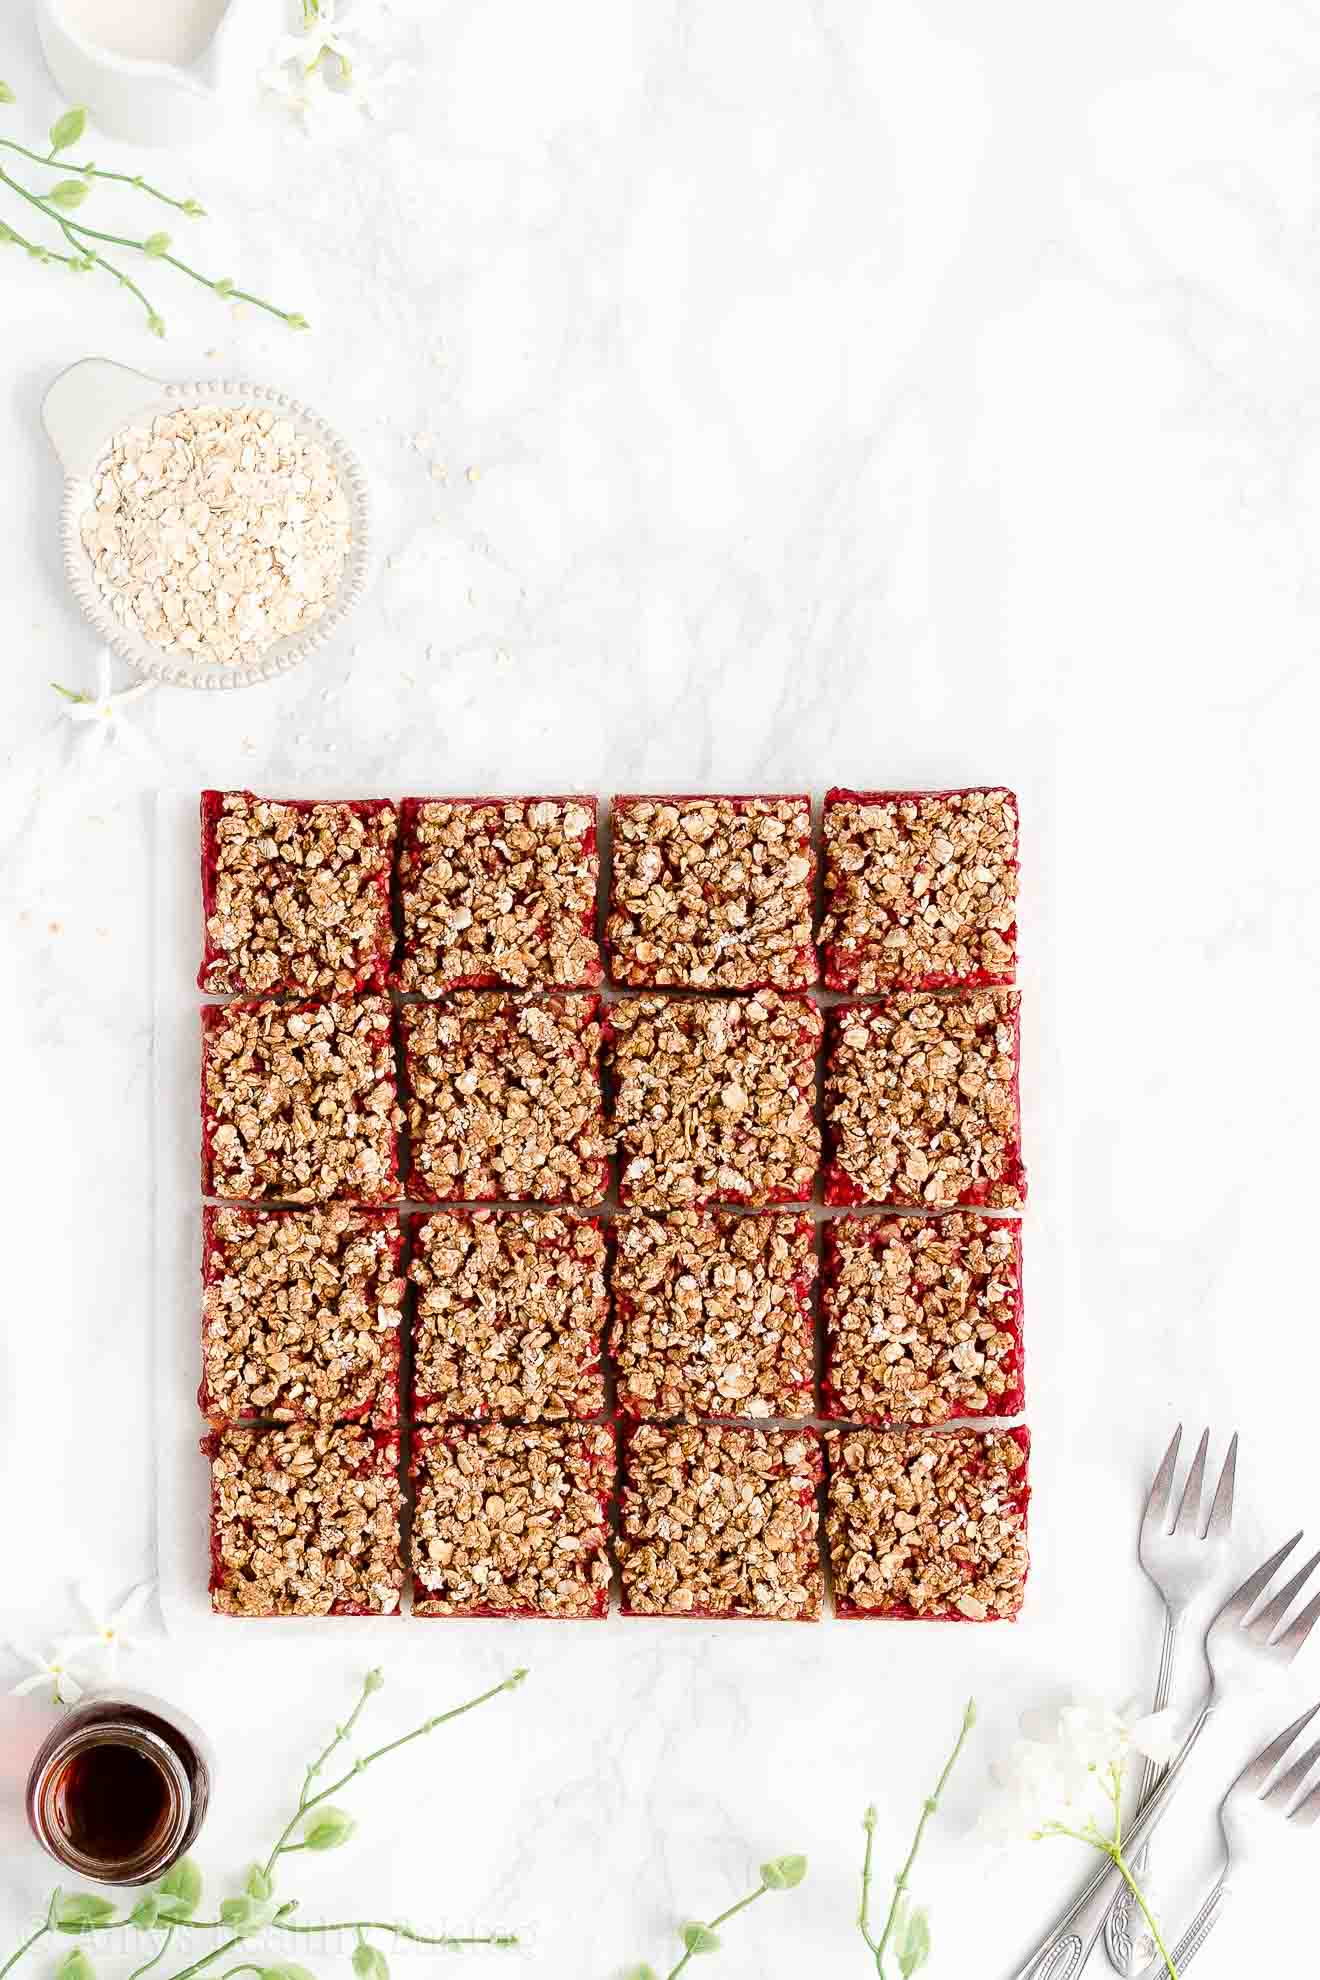 Easy Healthy Clean Eating Vegan Gluten Free Raspberry Oatmeal Crumble Bars